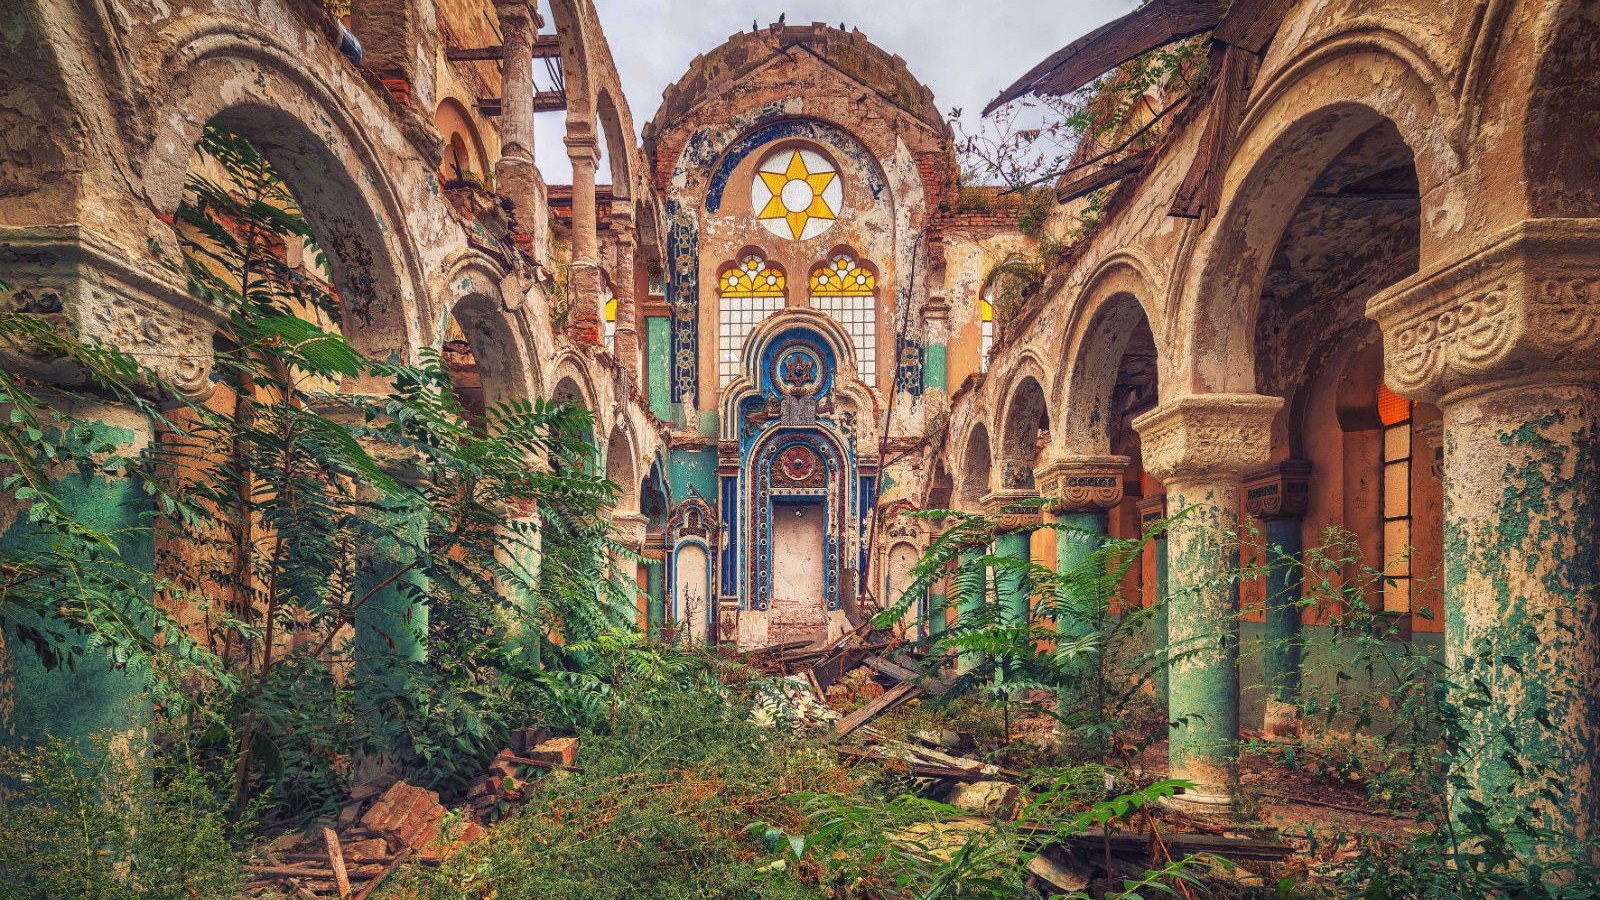 abandoned places worship haker buildings matthias paintings photographing forgotten structures photographer architecture beauty urbex artistic photographs